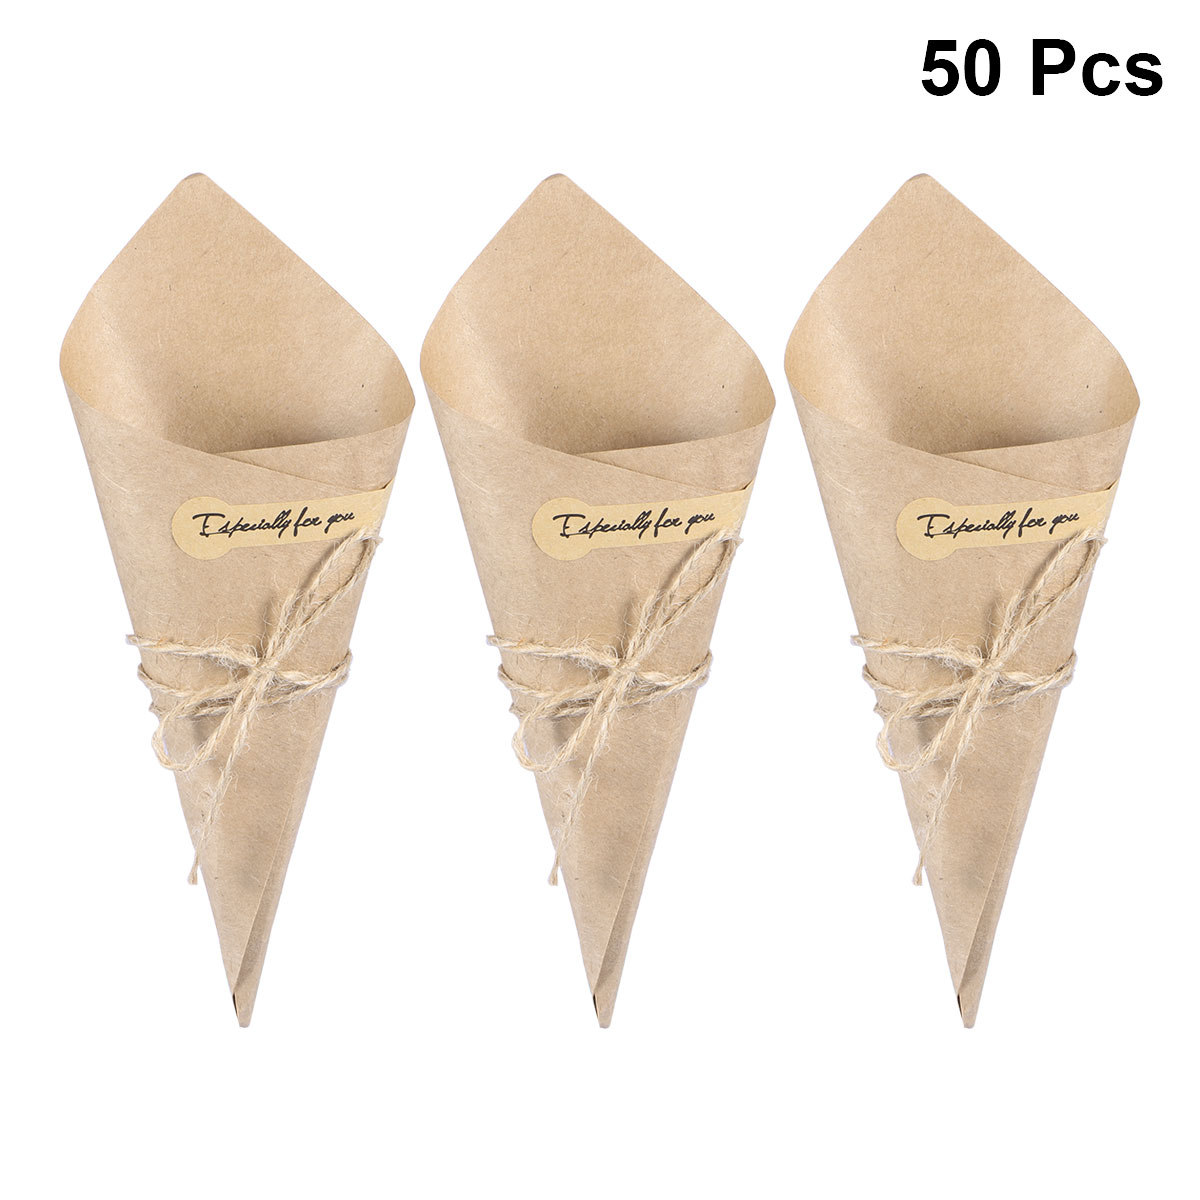 Paper Gift Box 50PCS Kraft Paper Cones Ice Cream Flower DIY Bouquet Holder Candy Boxes Table Decor Wedding Gifts Party Supplies